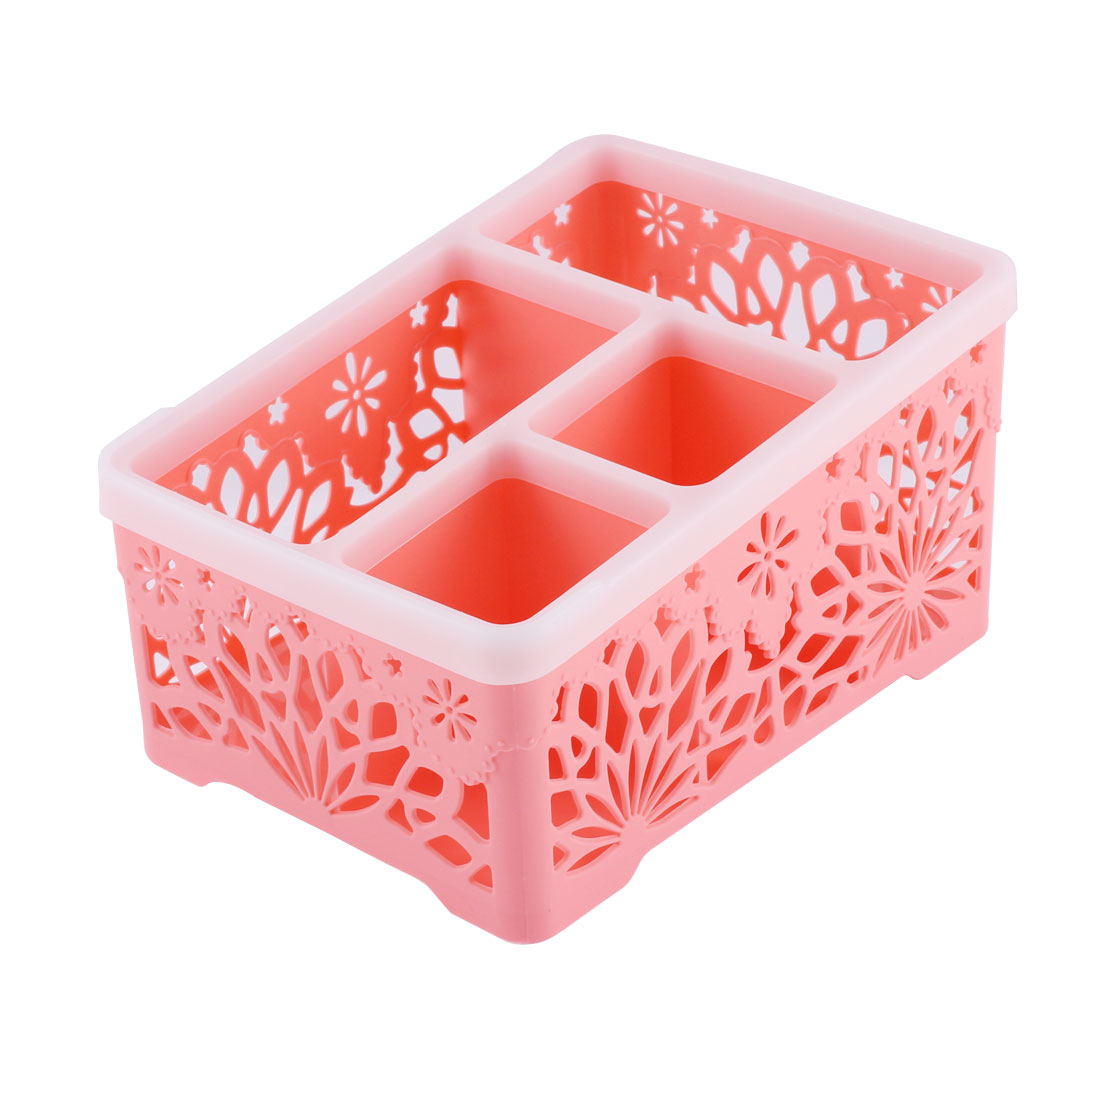 Home Office Plastic Hollow Out Flower Design 4 Compartments Storage Organizer Holder Box Pink